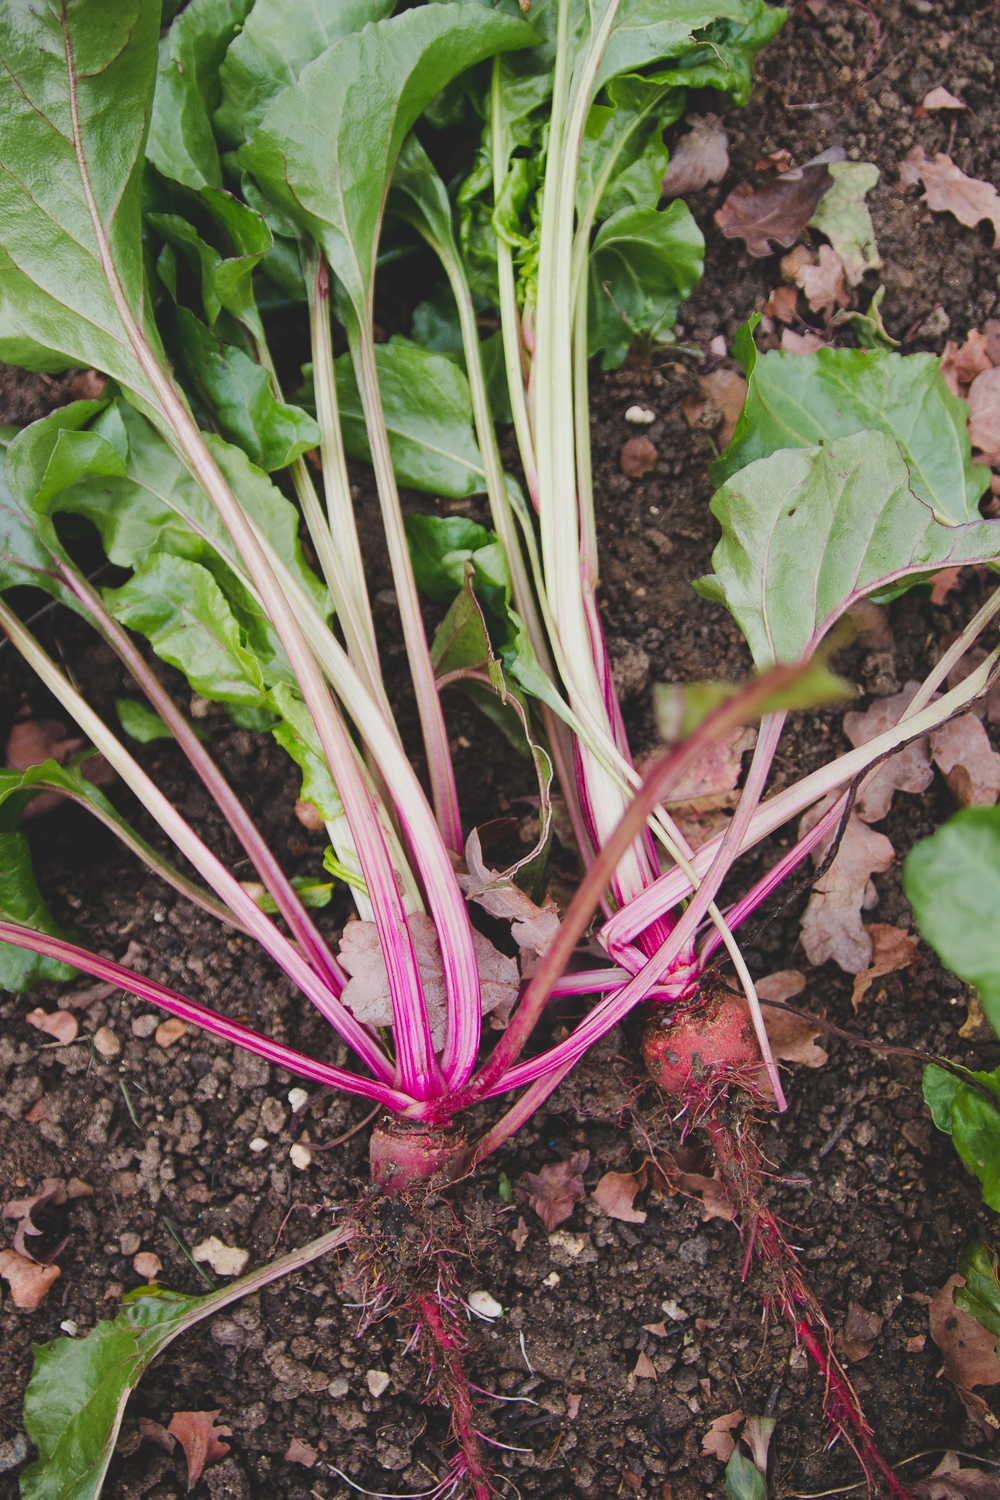 Grow Your Own - Beetroot